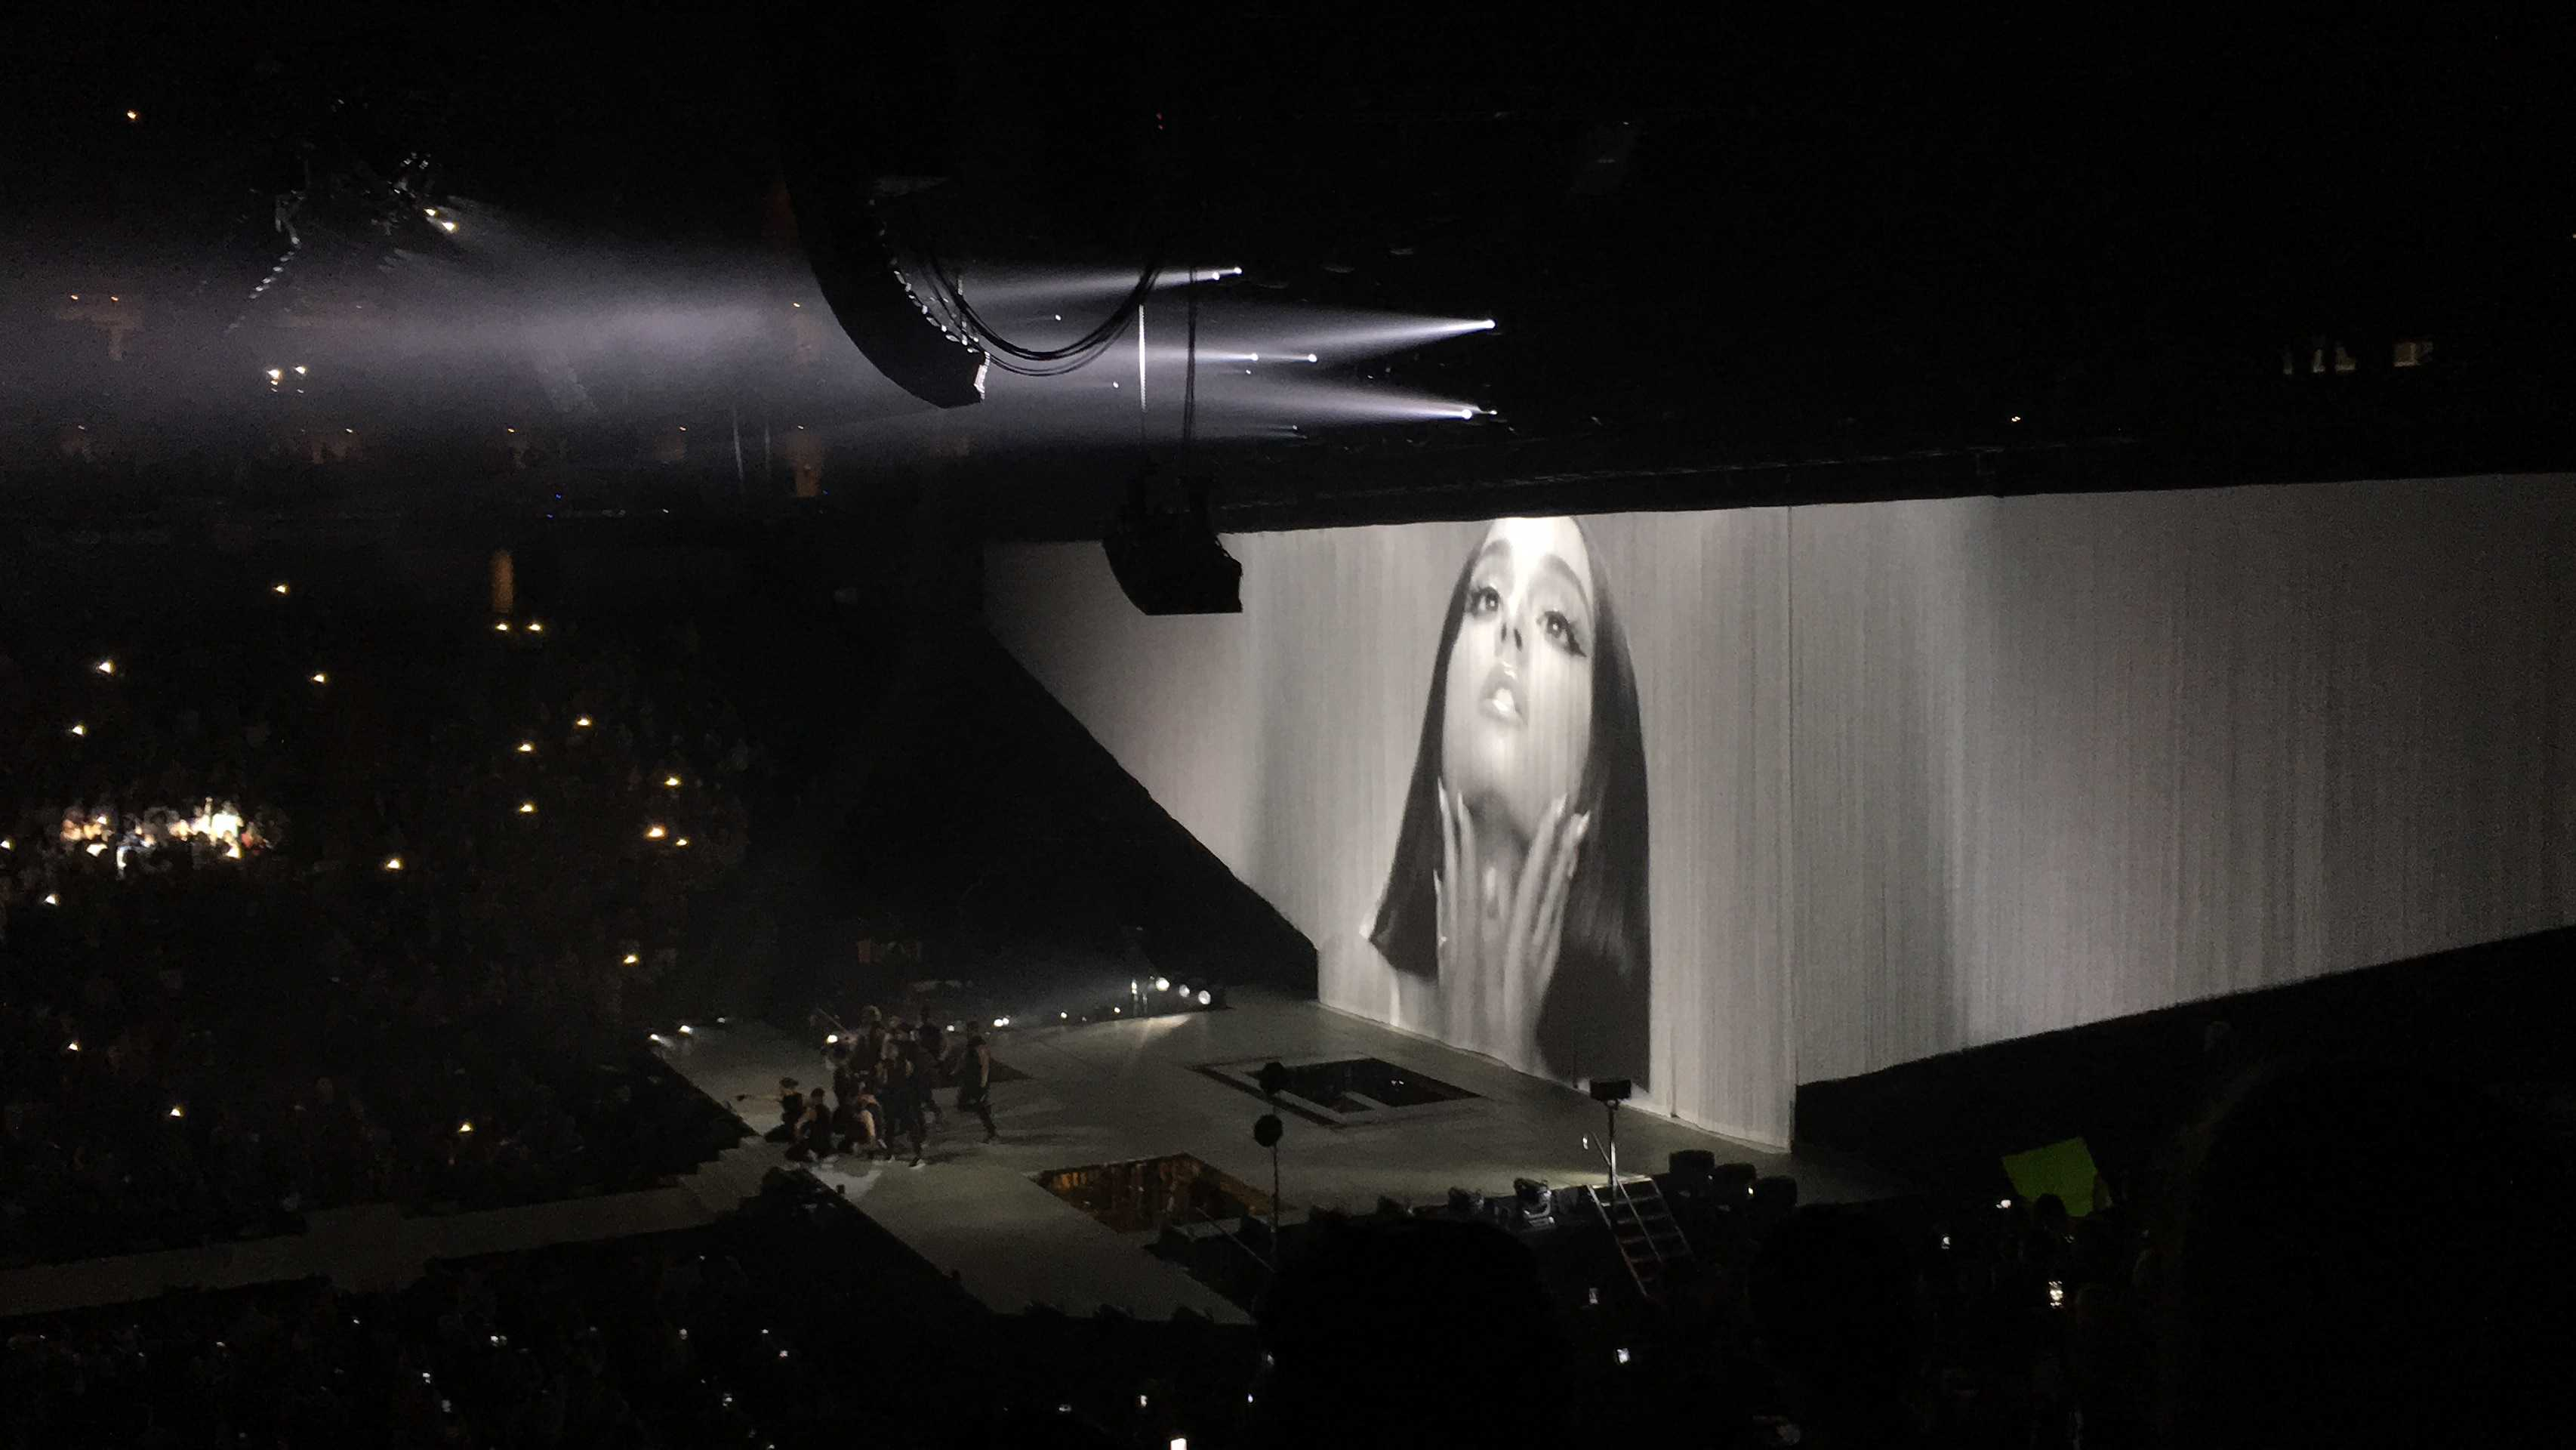 The sets and backgrounds at the Ariana Grande concert were very elaborate and added a whole new level to the experience.